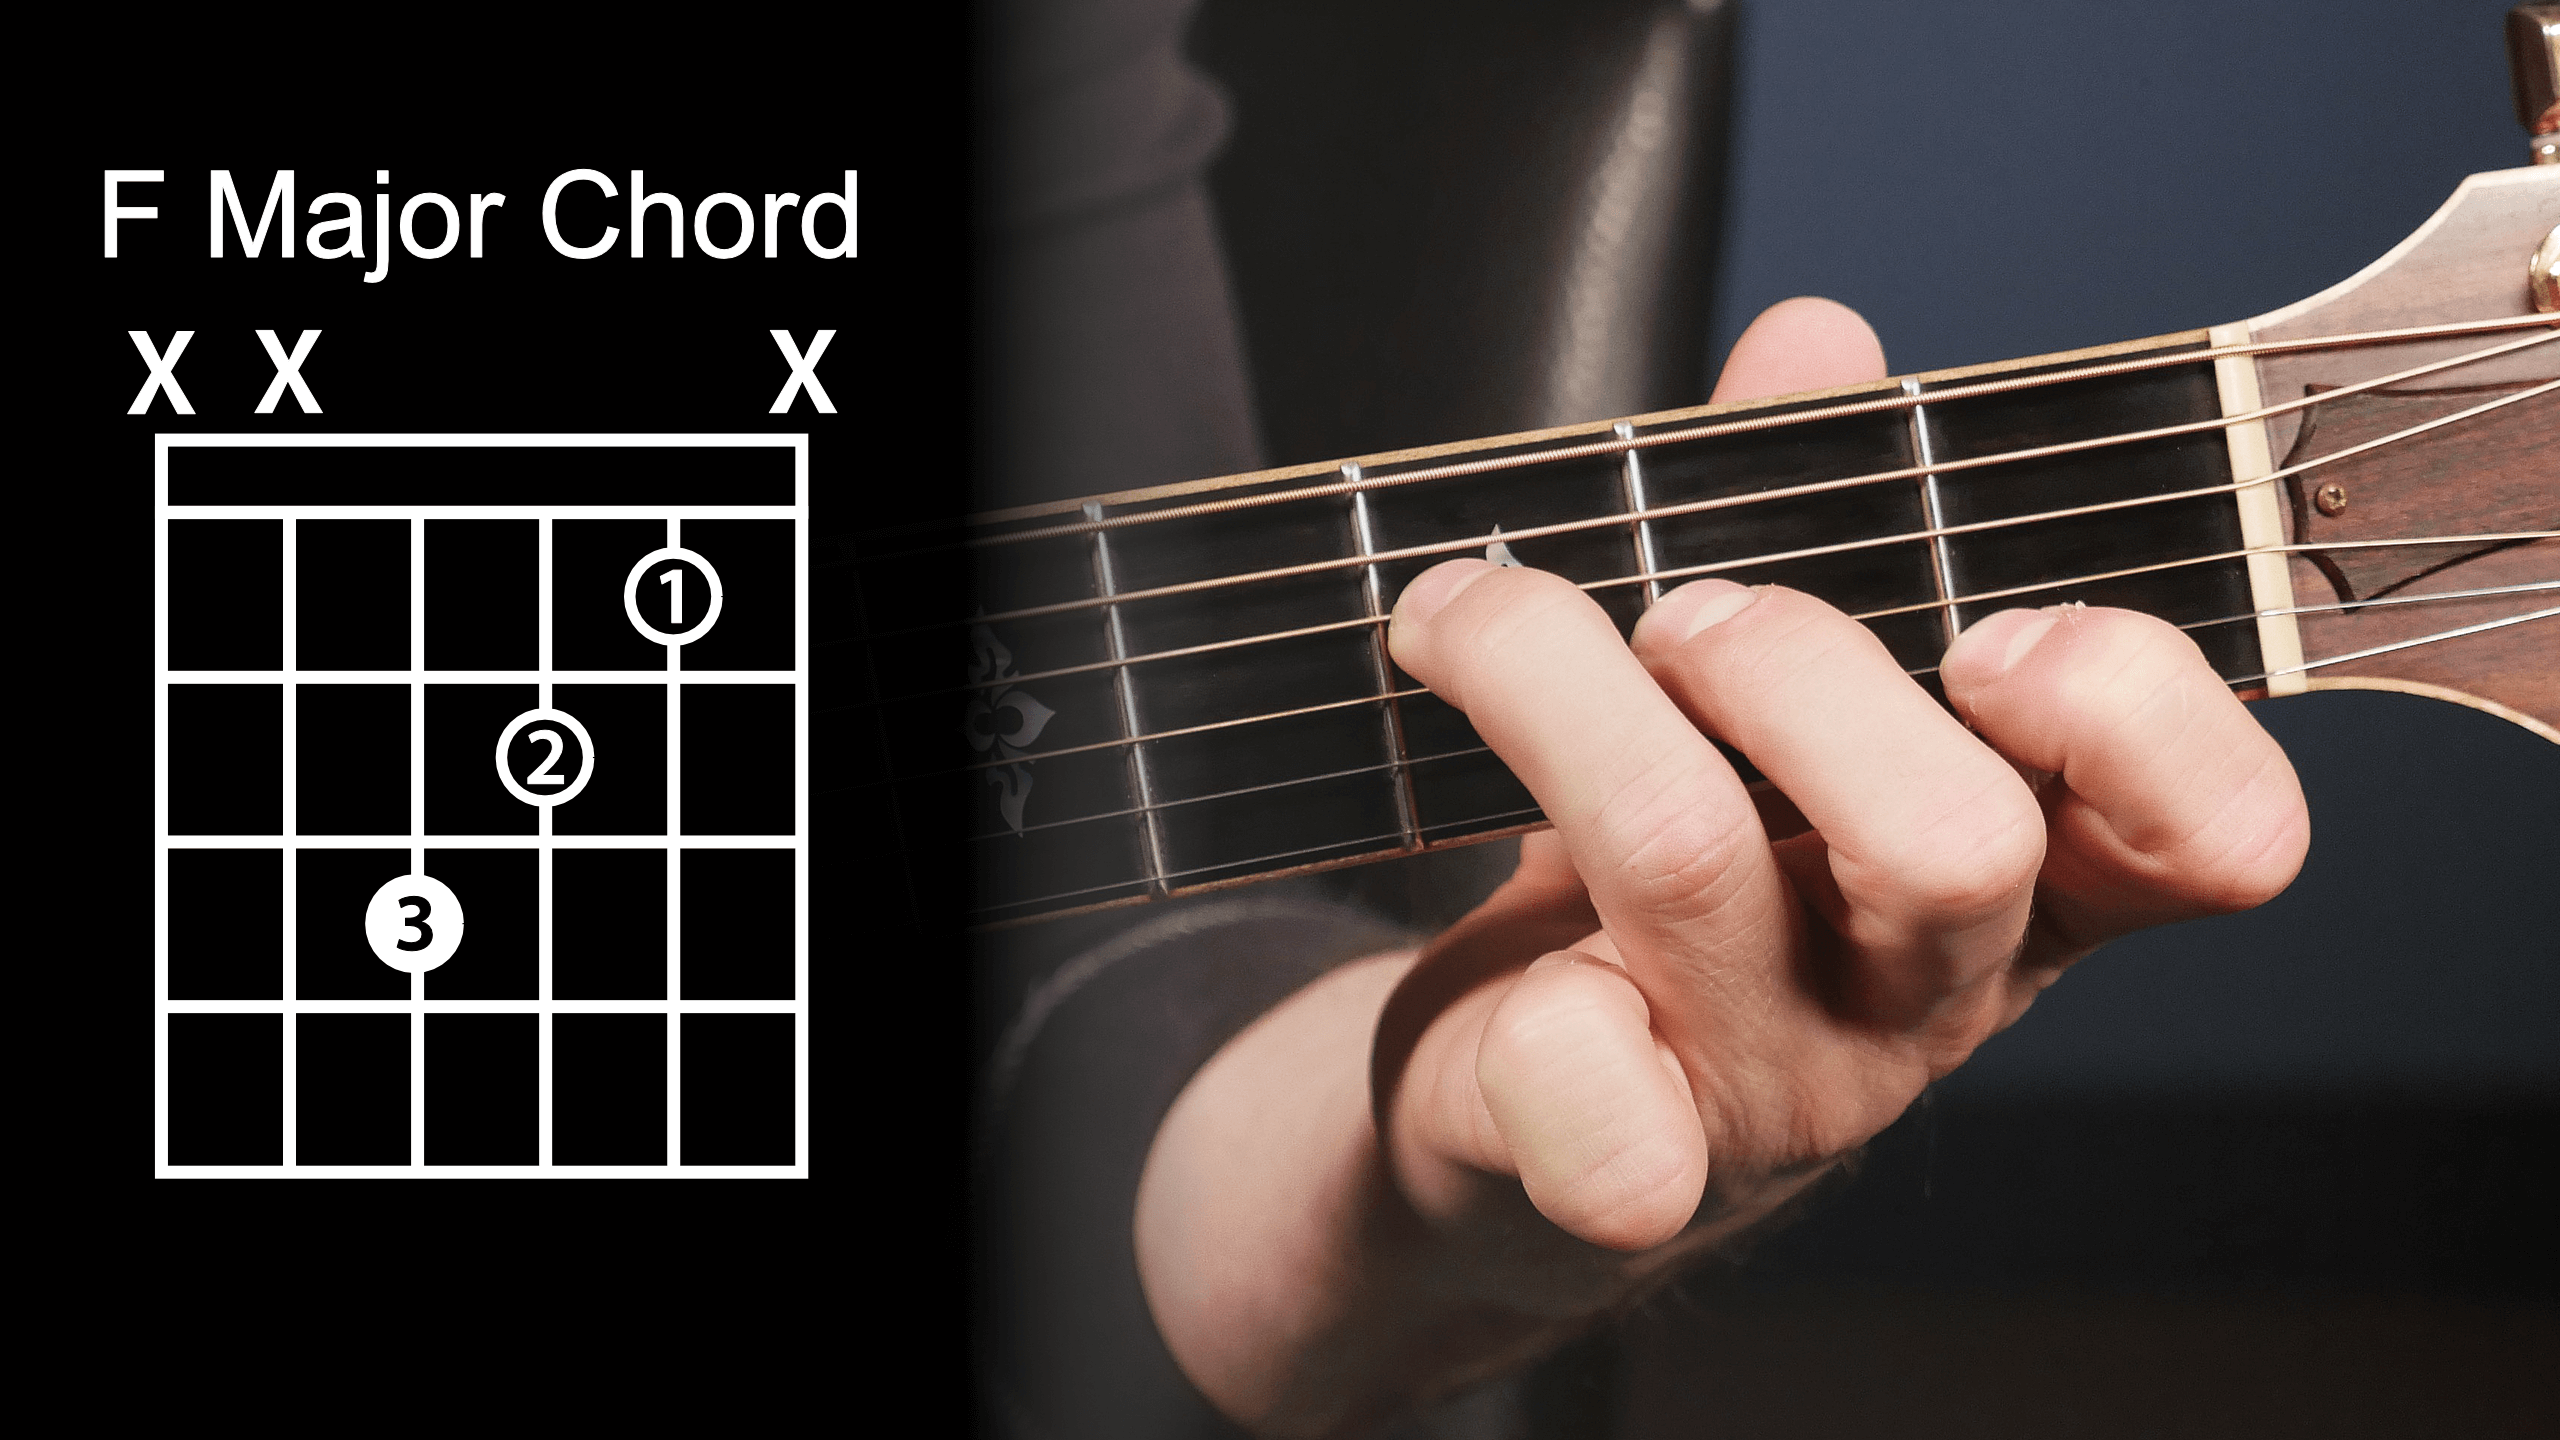 F Major Chord Diagram